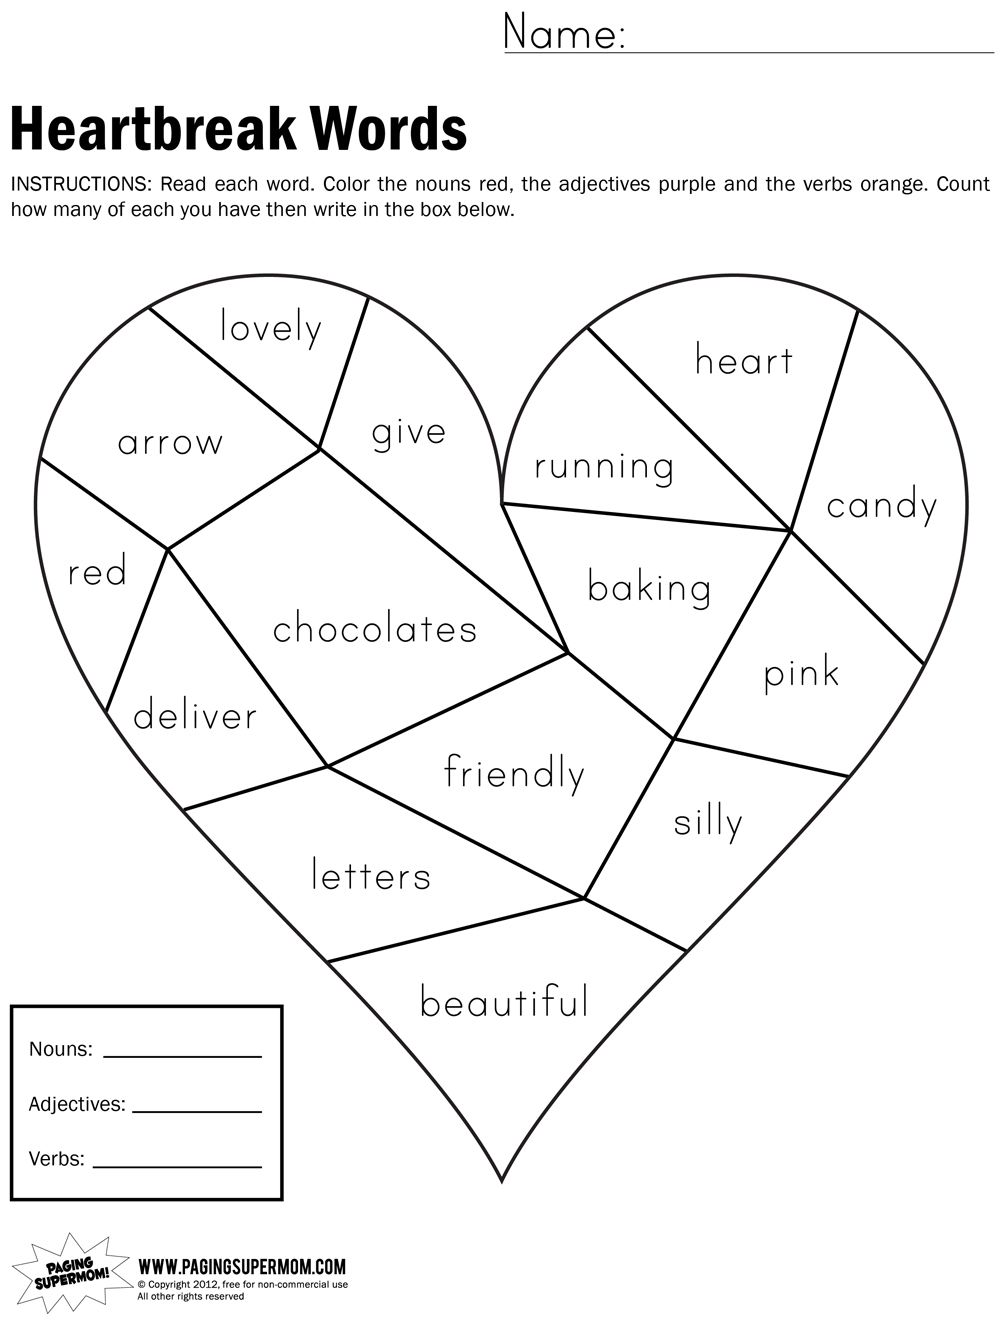 Heartbreak Words Free Printable Worksheet